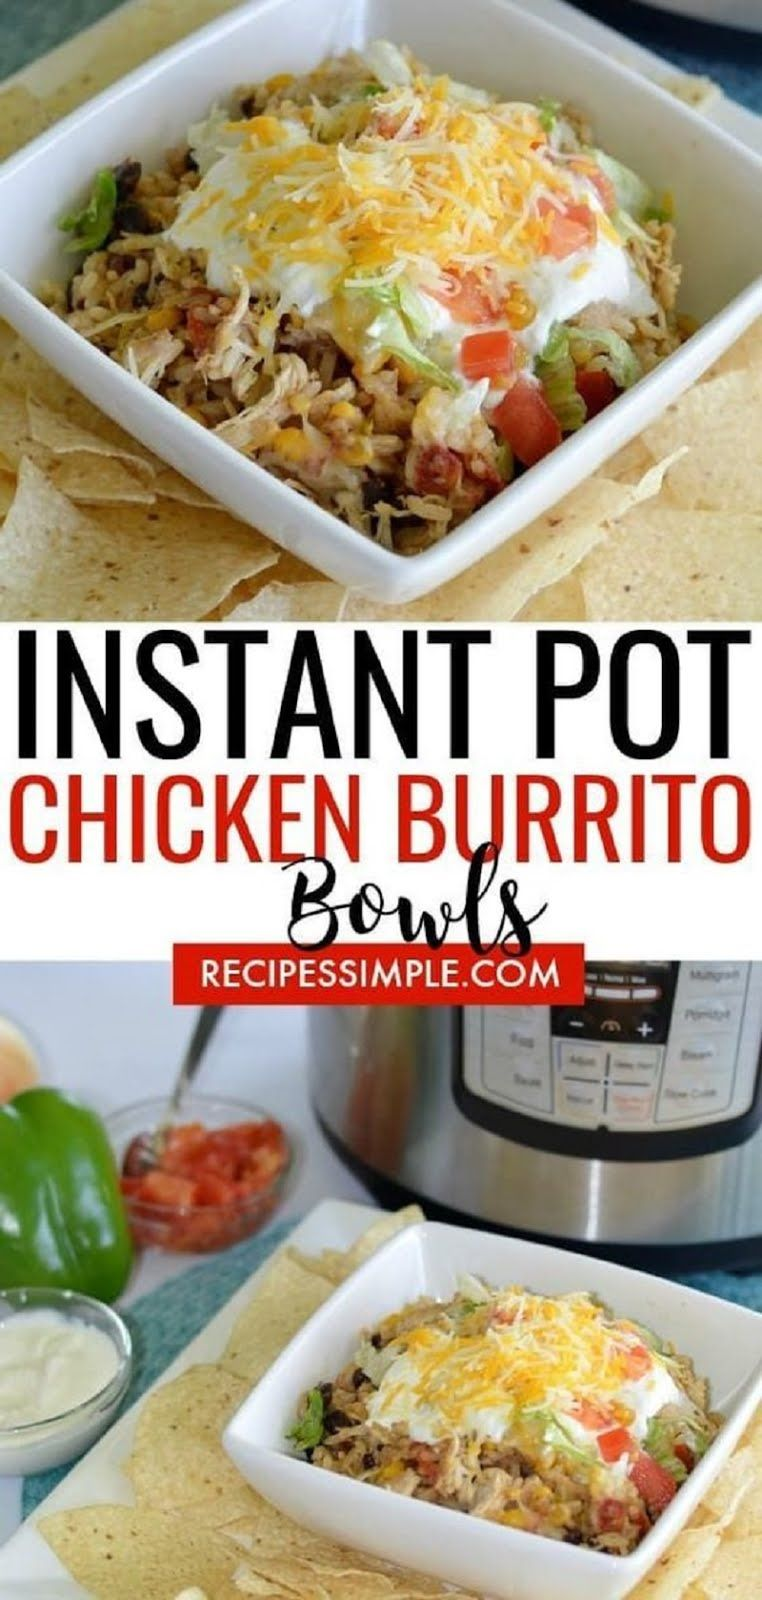 Instant Pot Shredded Chicken Burrito Bowls images